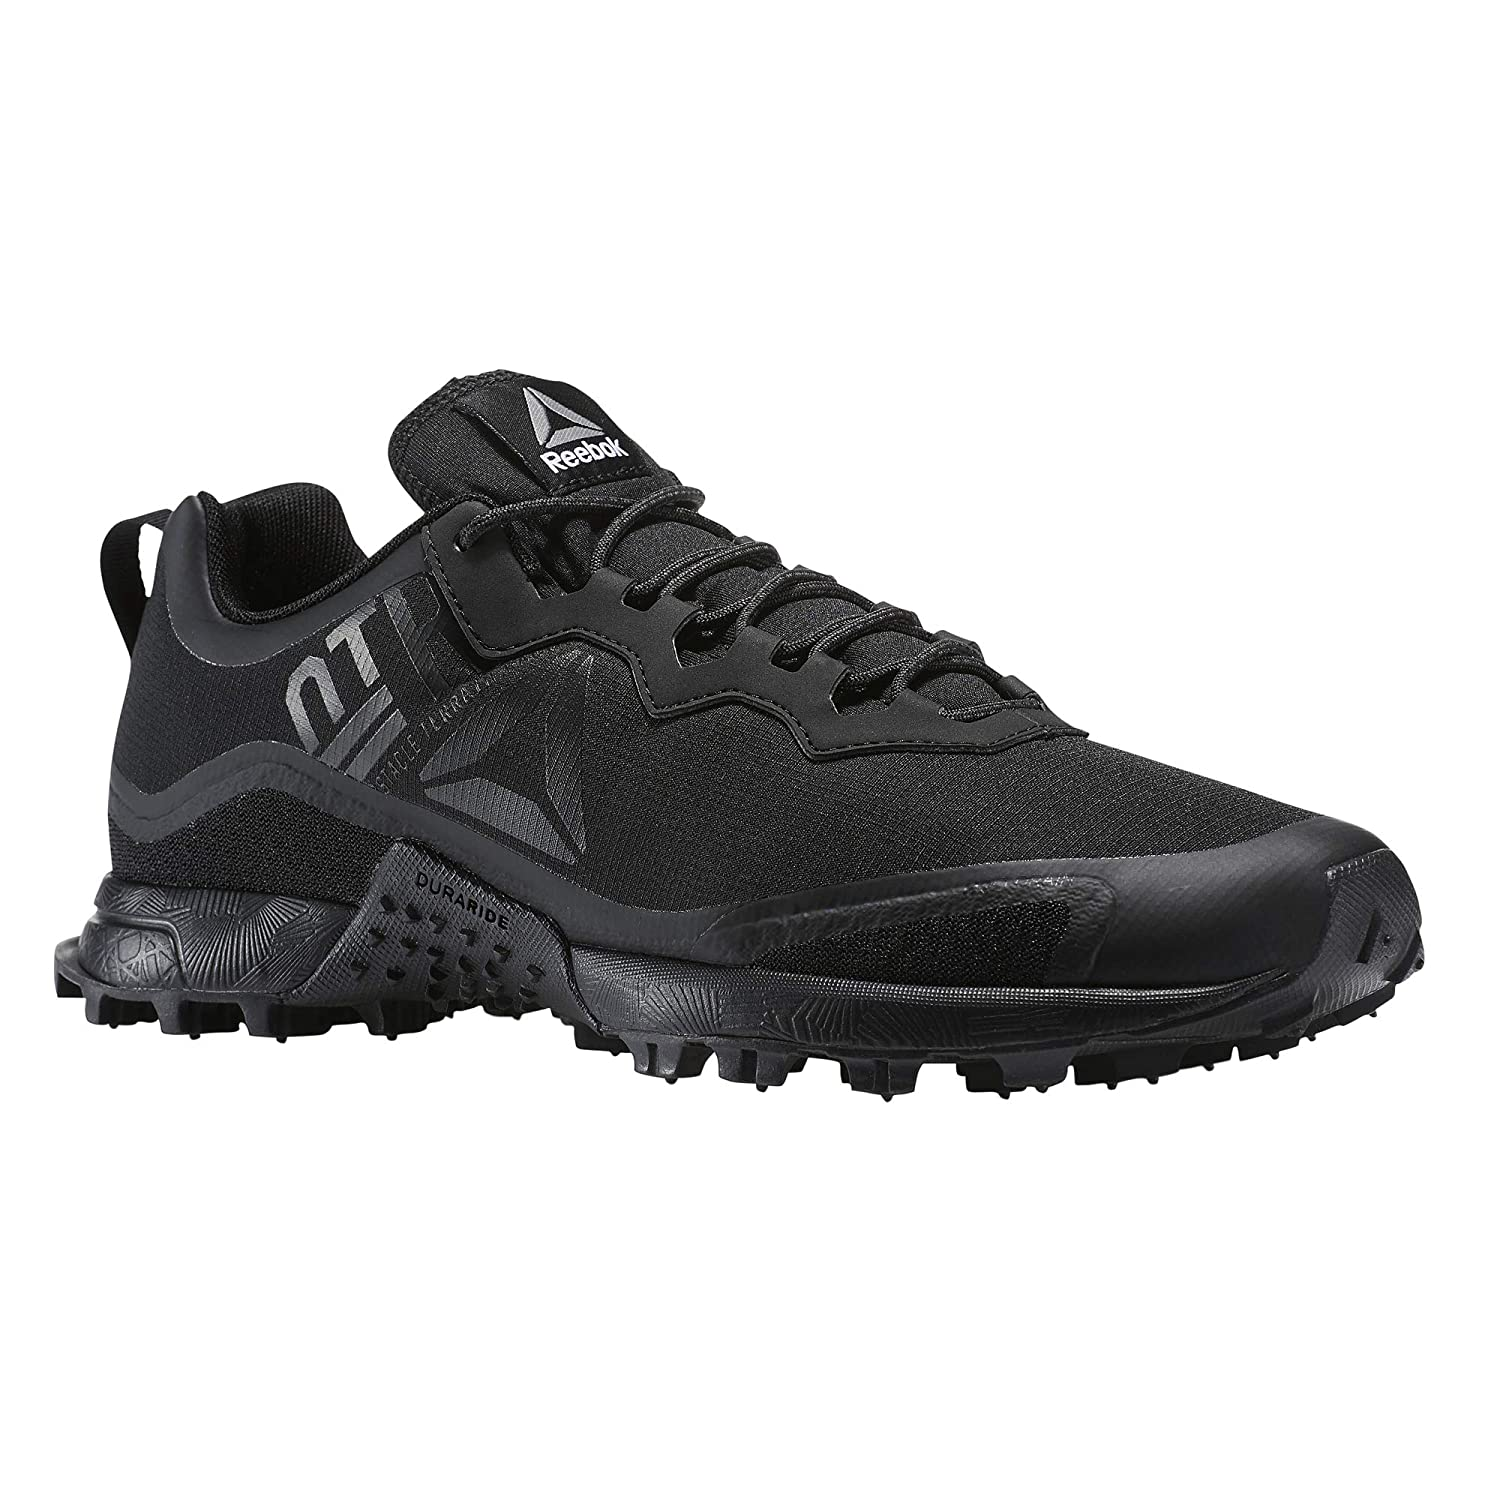 e5cdc7b0 Reebok Men's All Terrain Craze Running Shoes